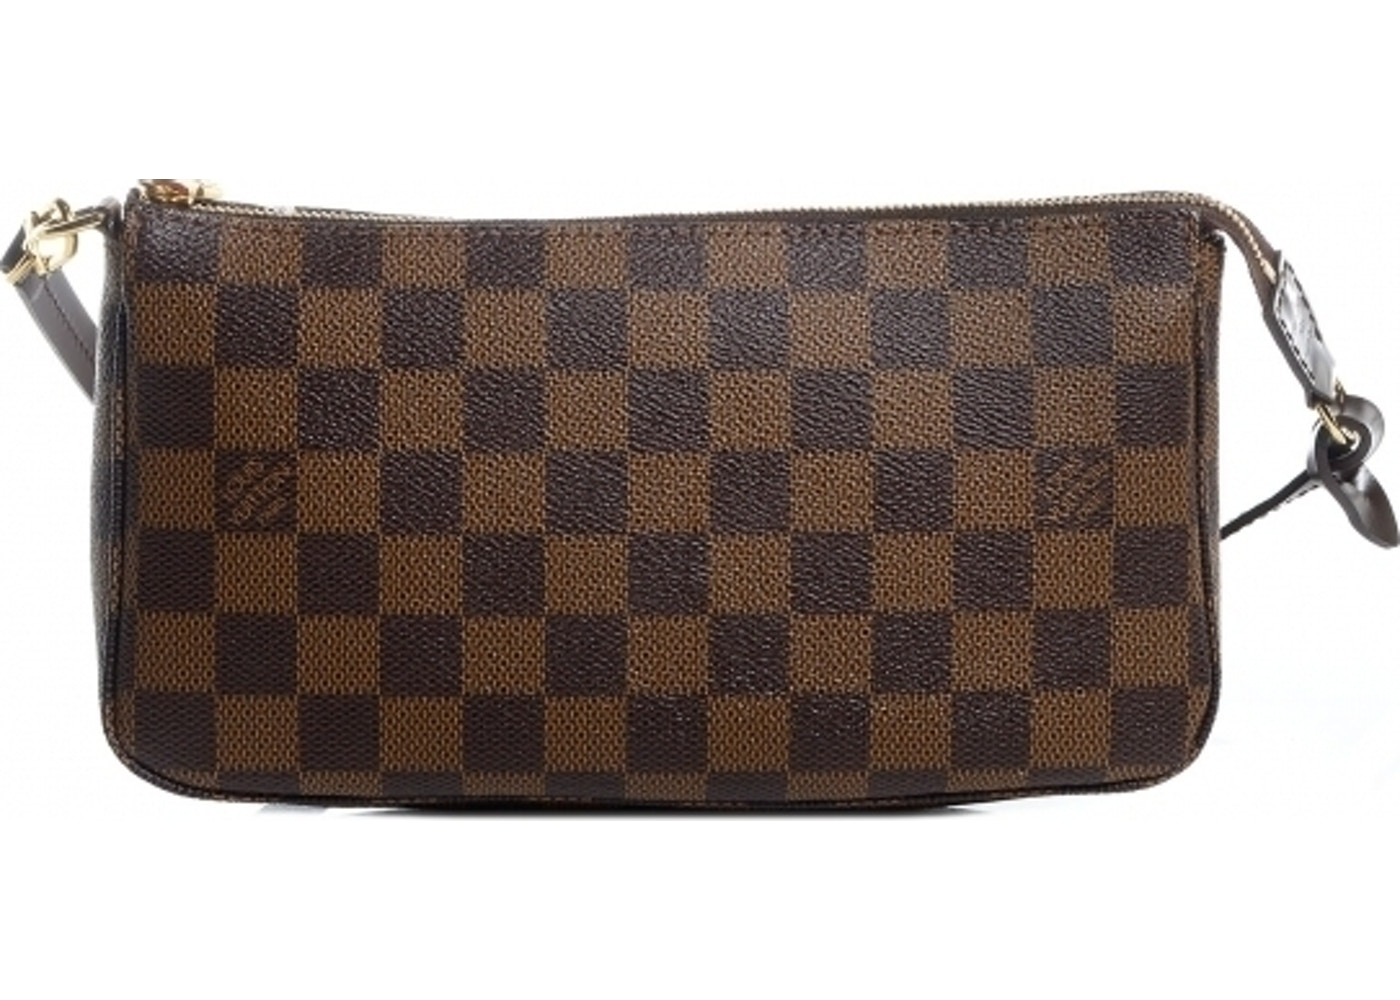 811687884 Louis Vuitton Pochette Accessoires Damier Ebene Brown. Damier Ebene Brown